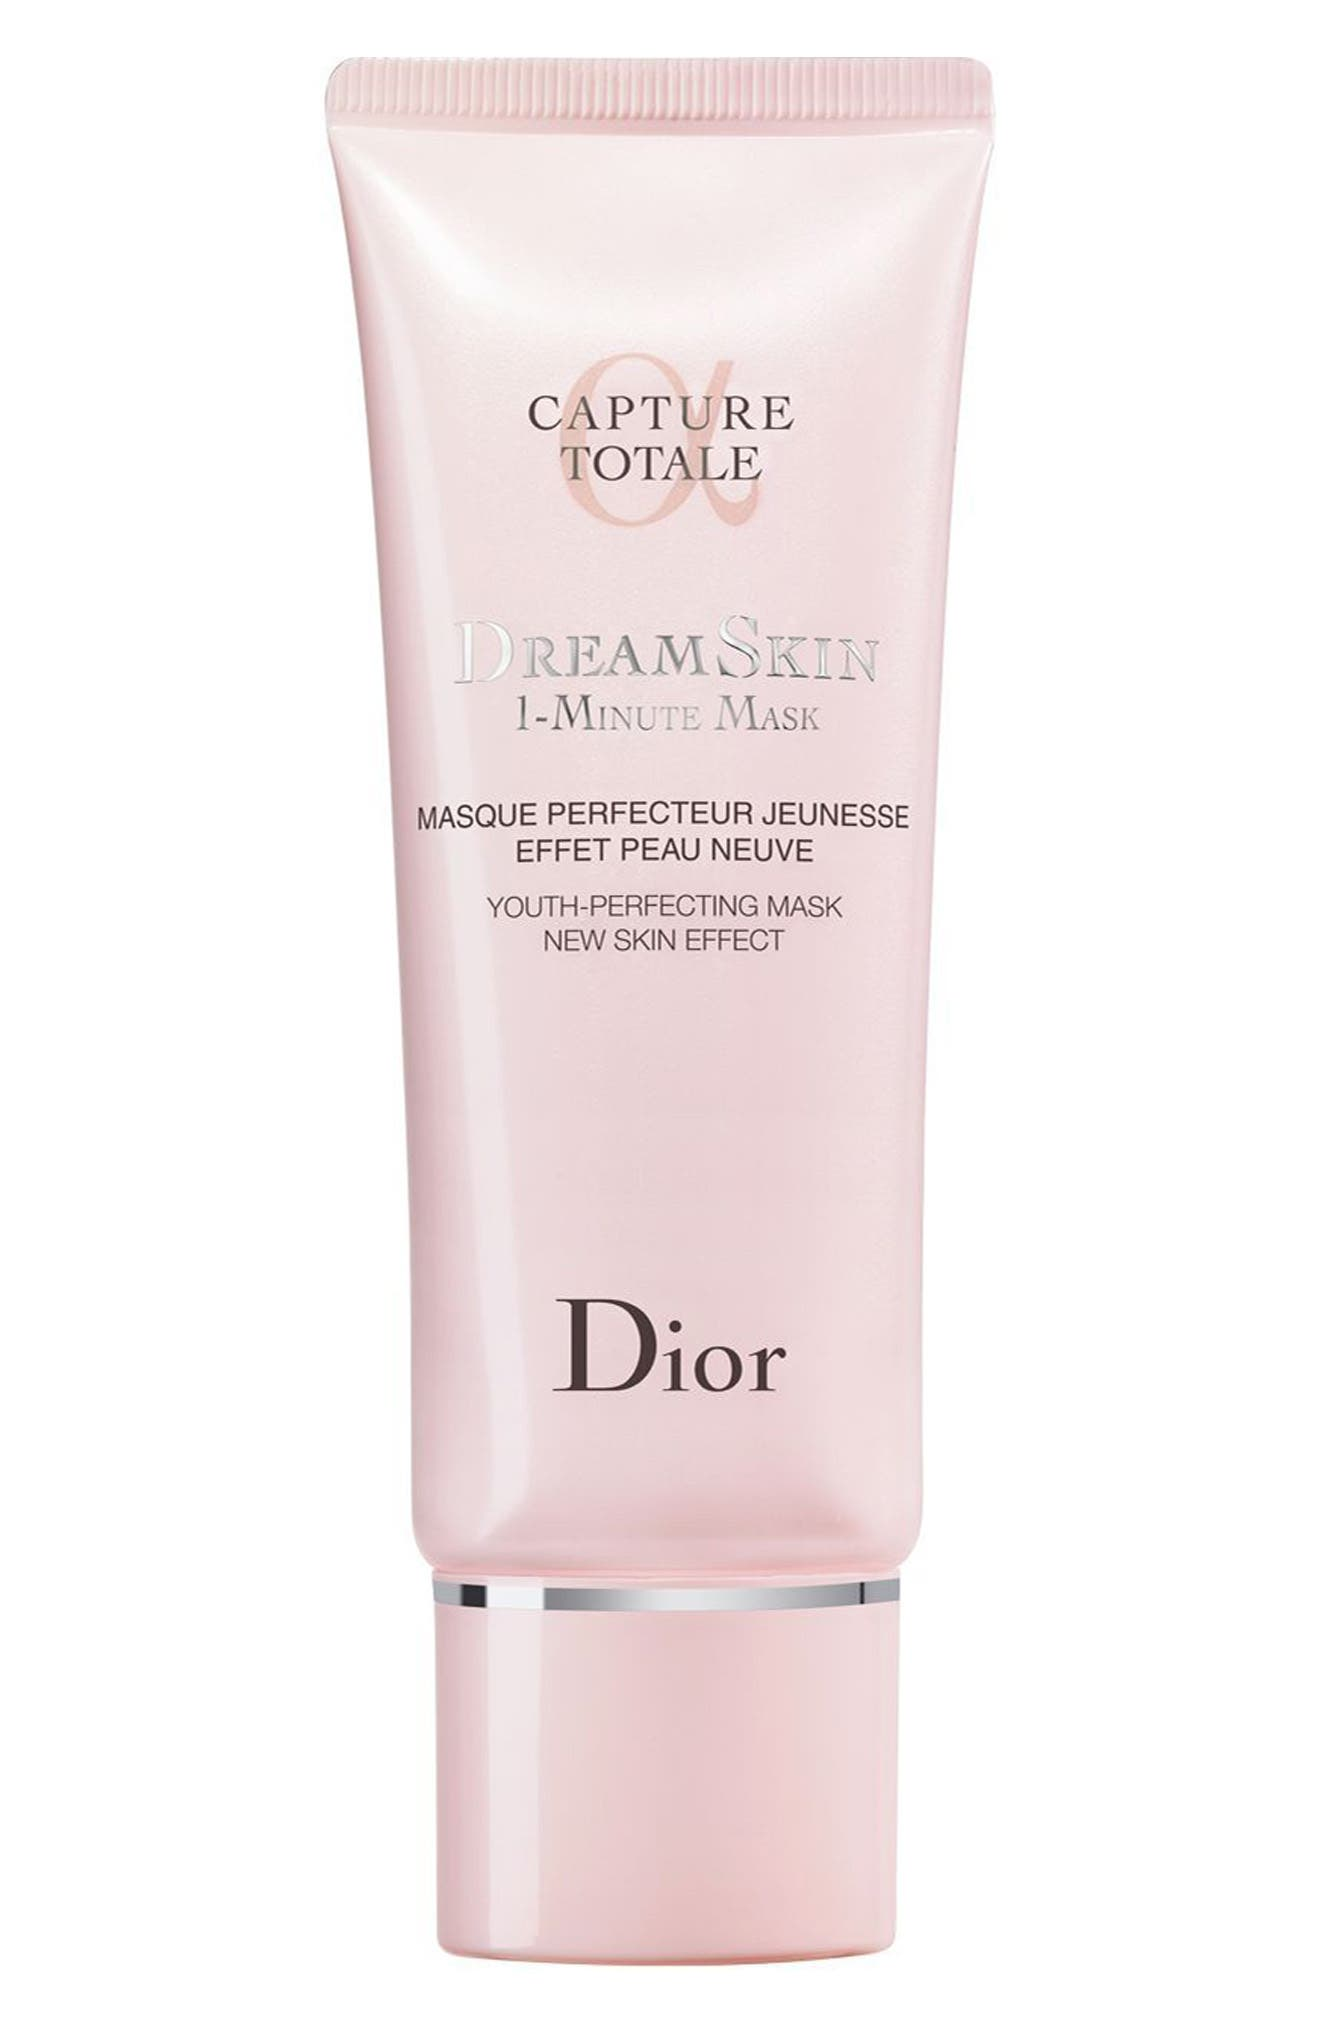 Capture Totale DreamSkin 1-Minute Mask,                         Main,                         color, NO COLOR